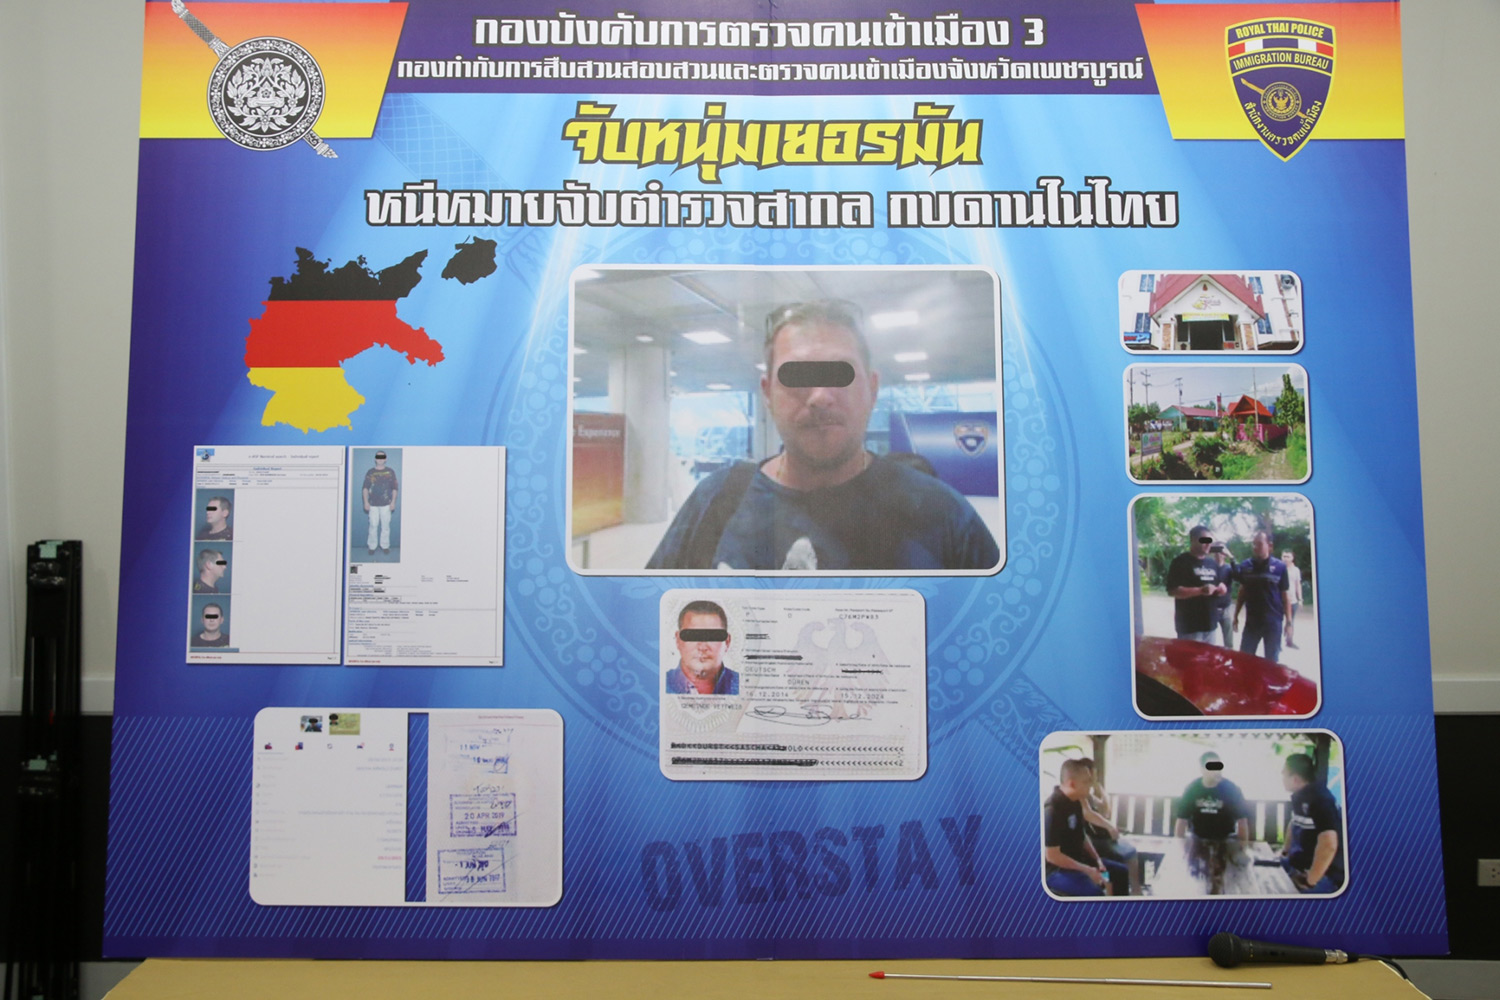 A police chart shows a German fugitive, 43, caught in Phetchabun province for overstaying his visa. Police found he was also on Interpol's wanted list. He will be sent back to Germany to face the charges against him. (Immigration Bureau photo)